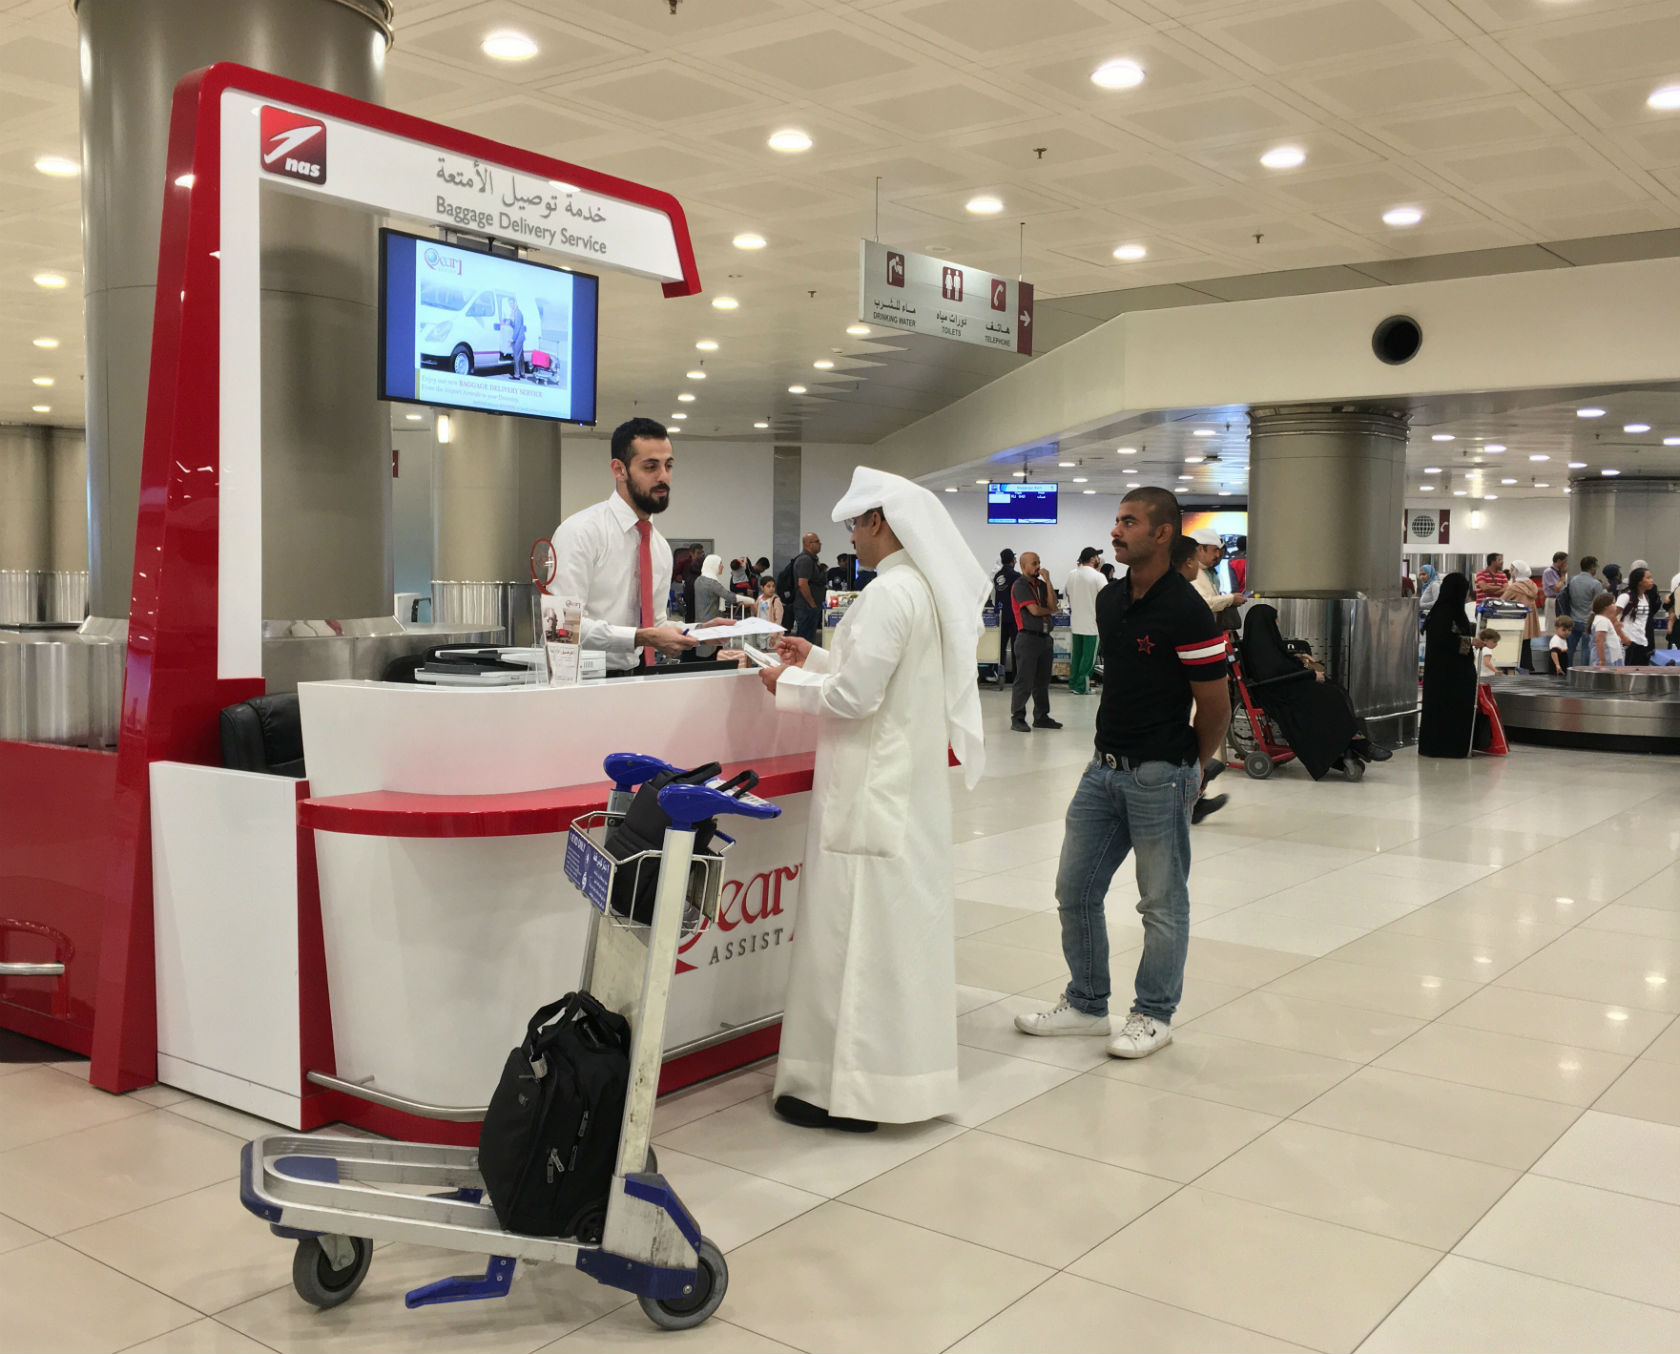 Luggage Bag Offers In Kuwait